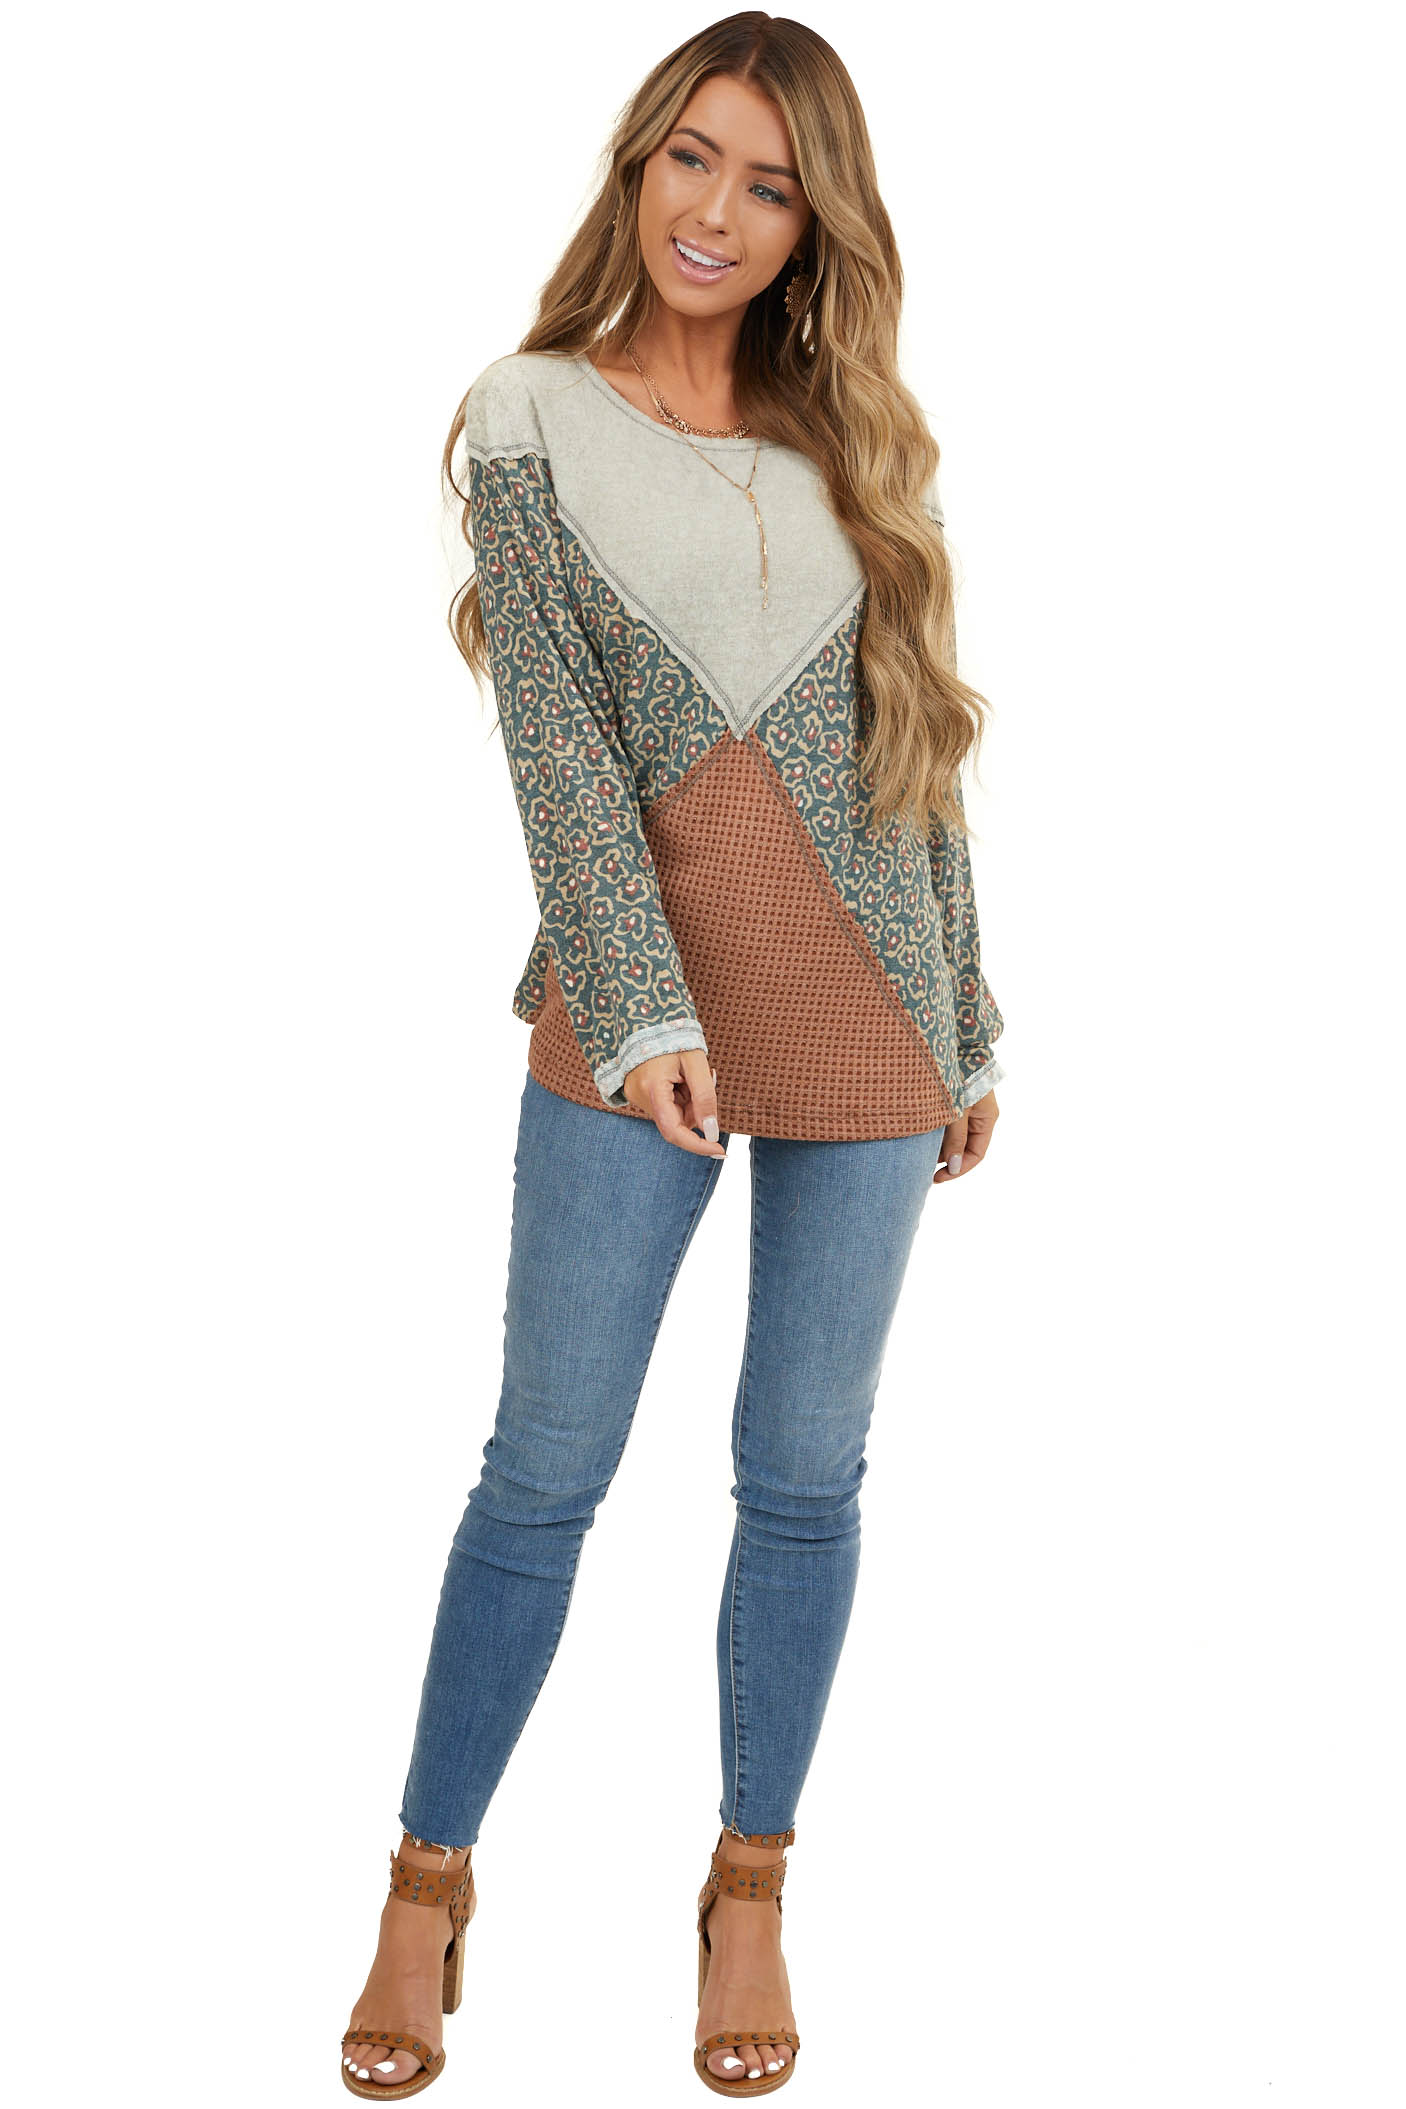 Oatmeal and Forest Green Colorblock Top with Long Sleeves